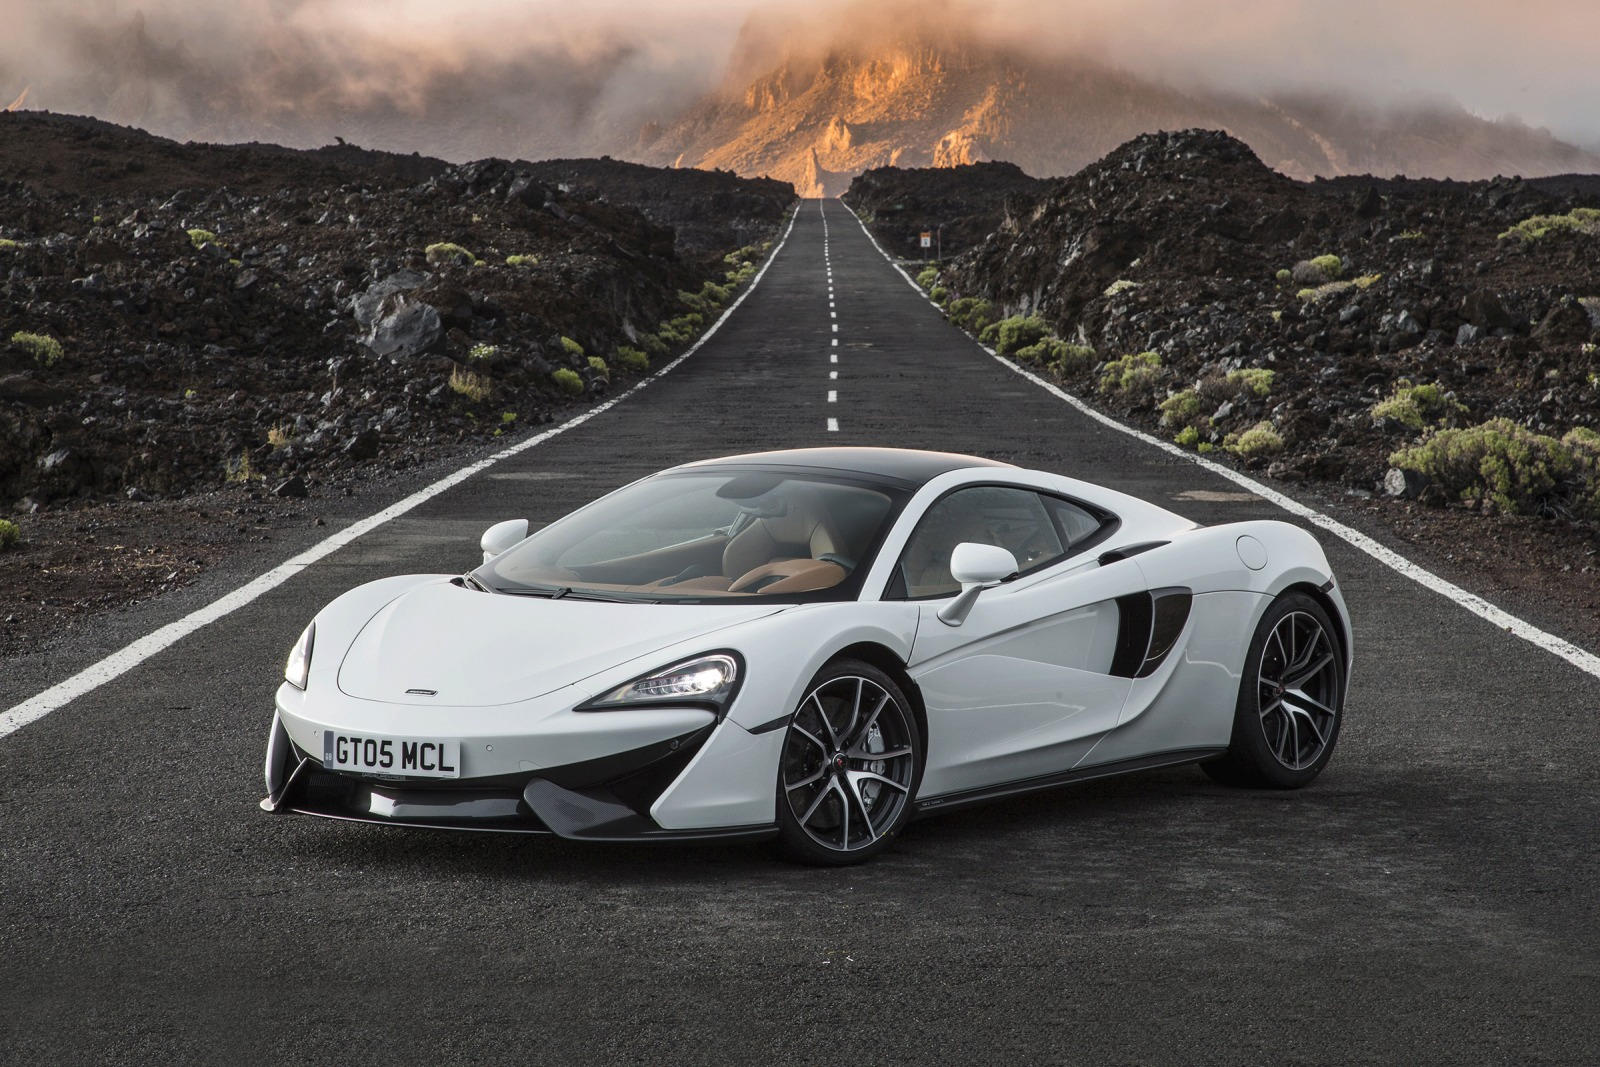 2018 mclaren 570gt review,trims, specs and price - carbuzz